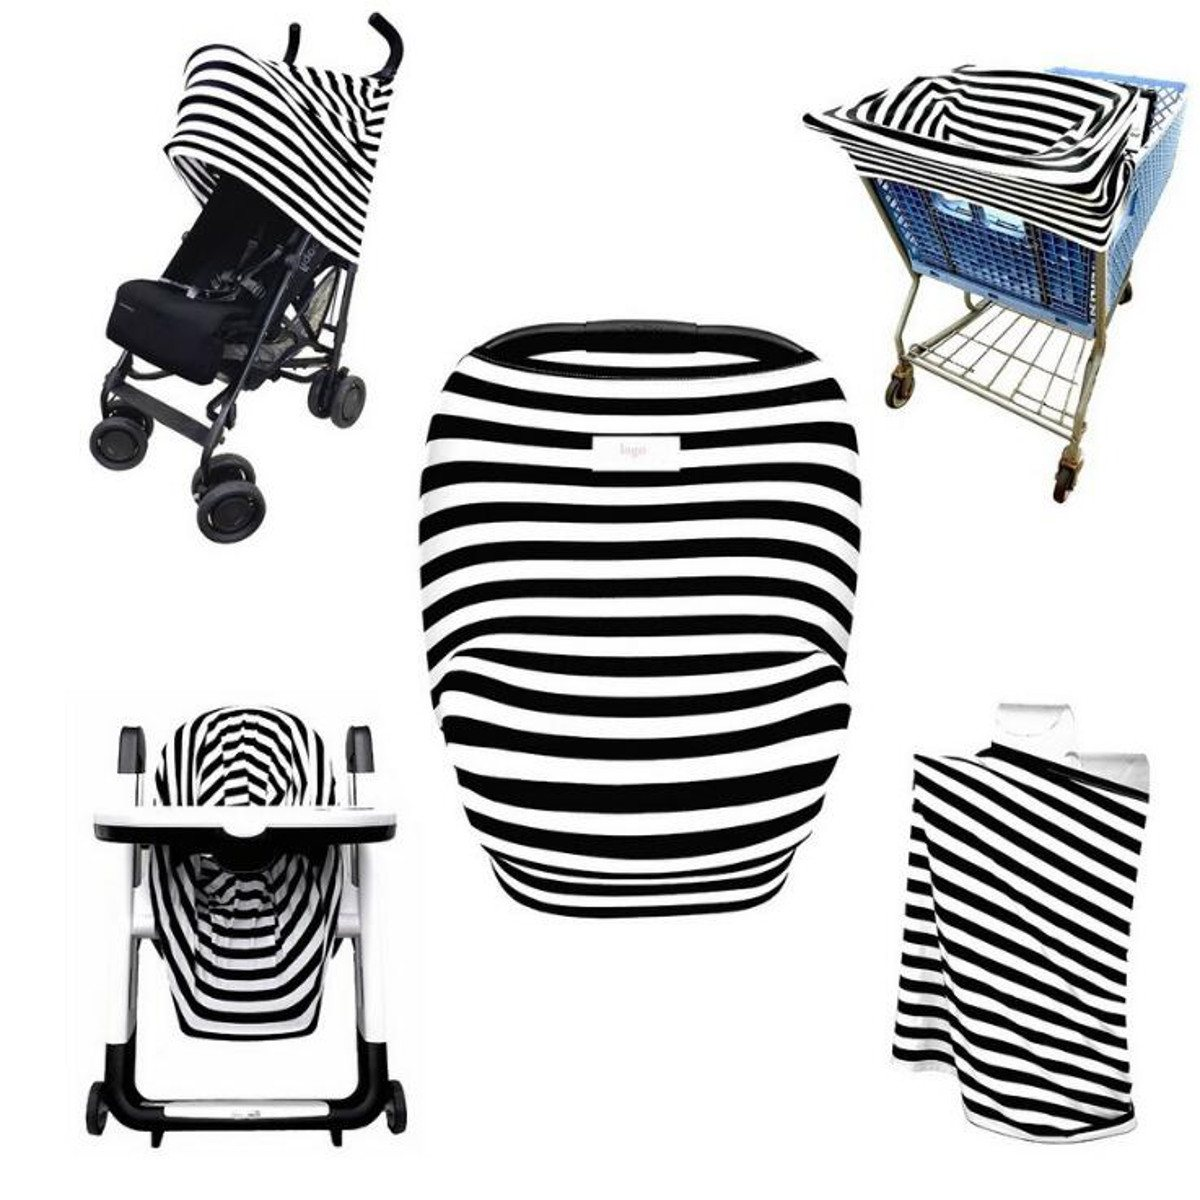 Multifunctional Stretchy Car Seat Canopy nursing cover stroller anti-sun sunshade cloth Shopping Cart Covers